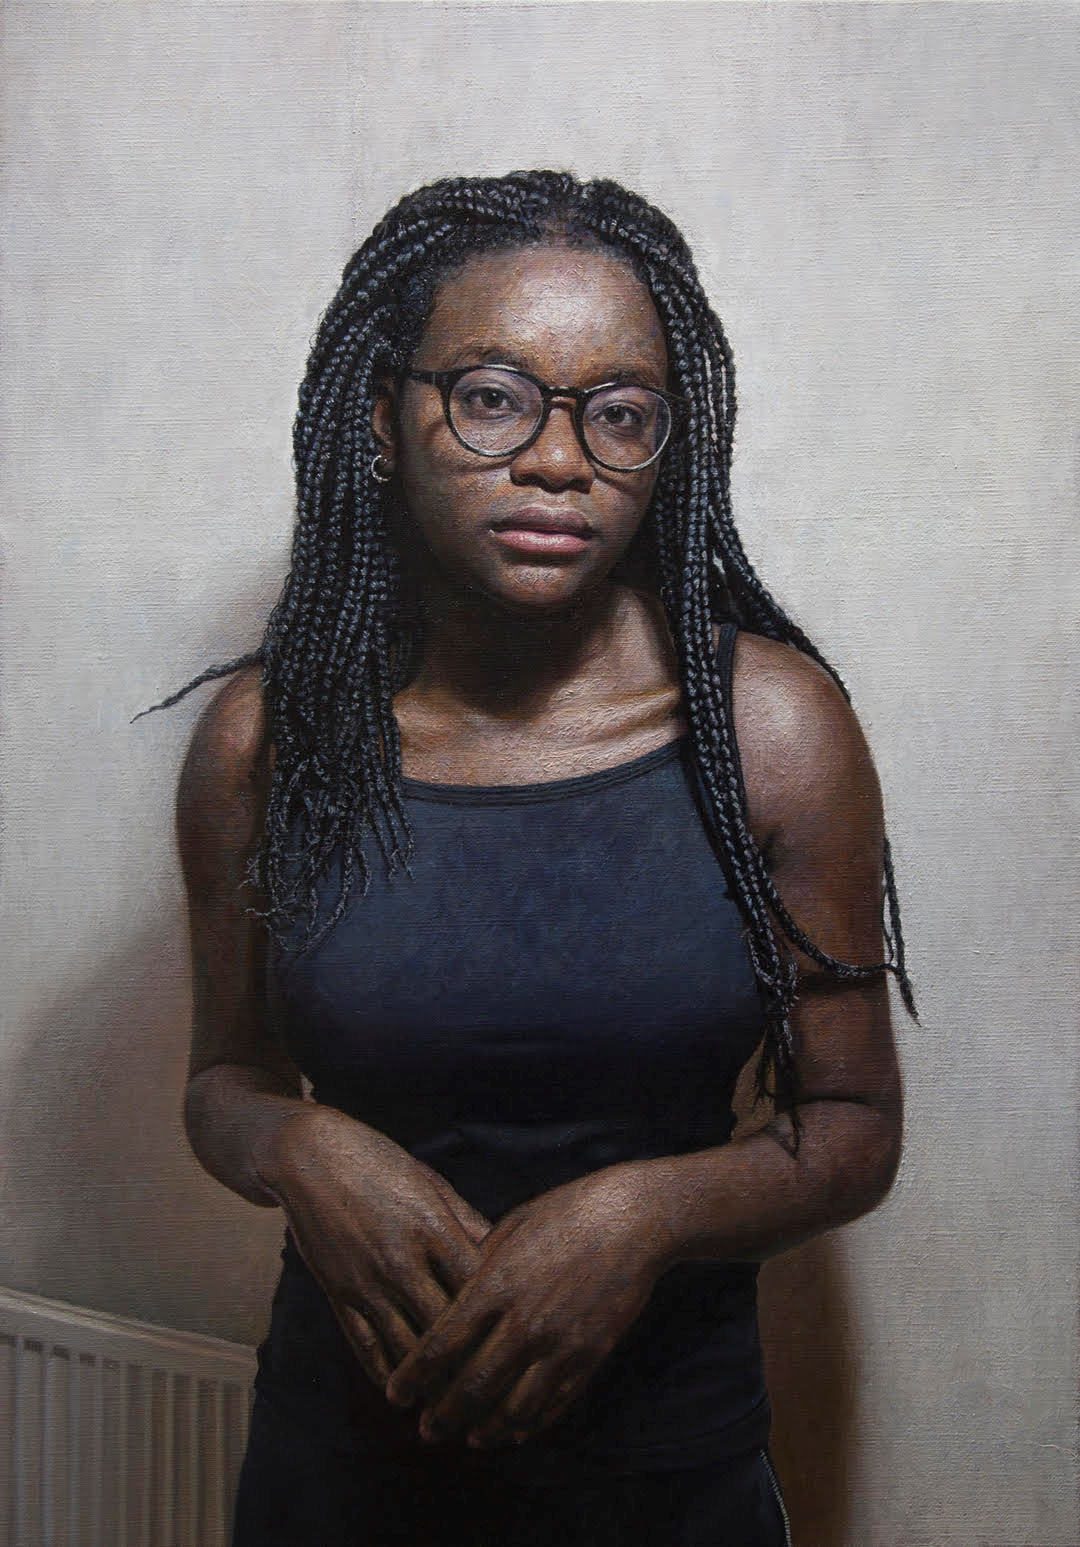 "'Eniola Sokalu' Mark Roscoe Oil on Linen, 26"" x 36"""